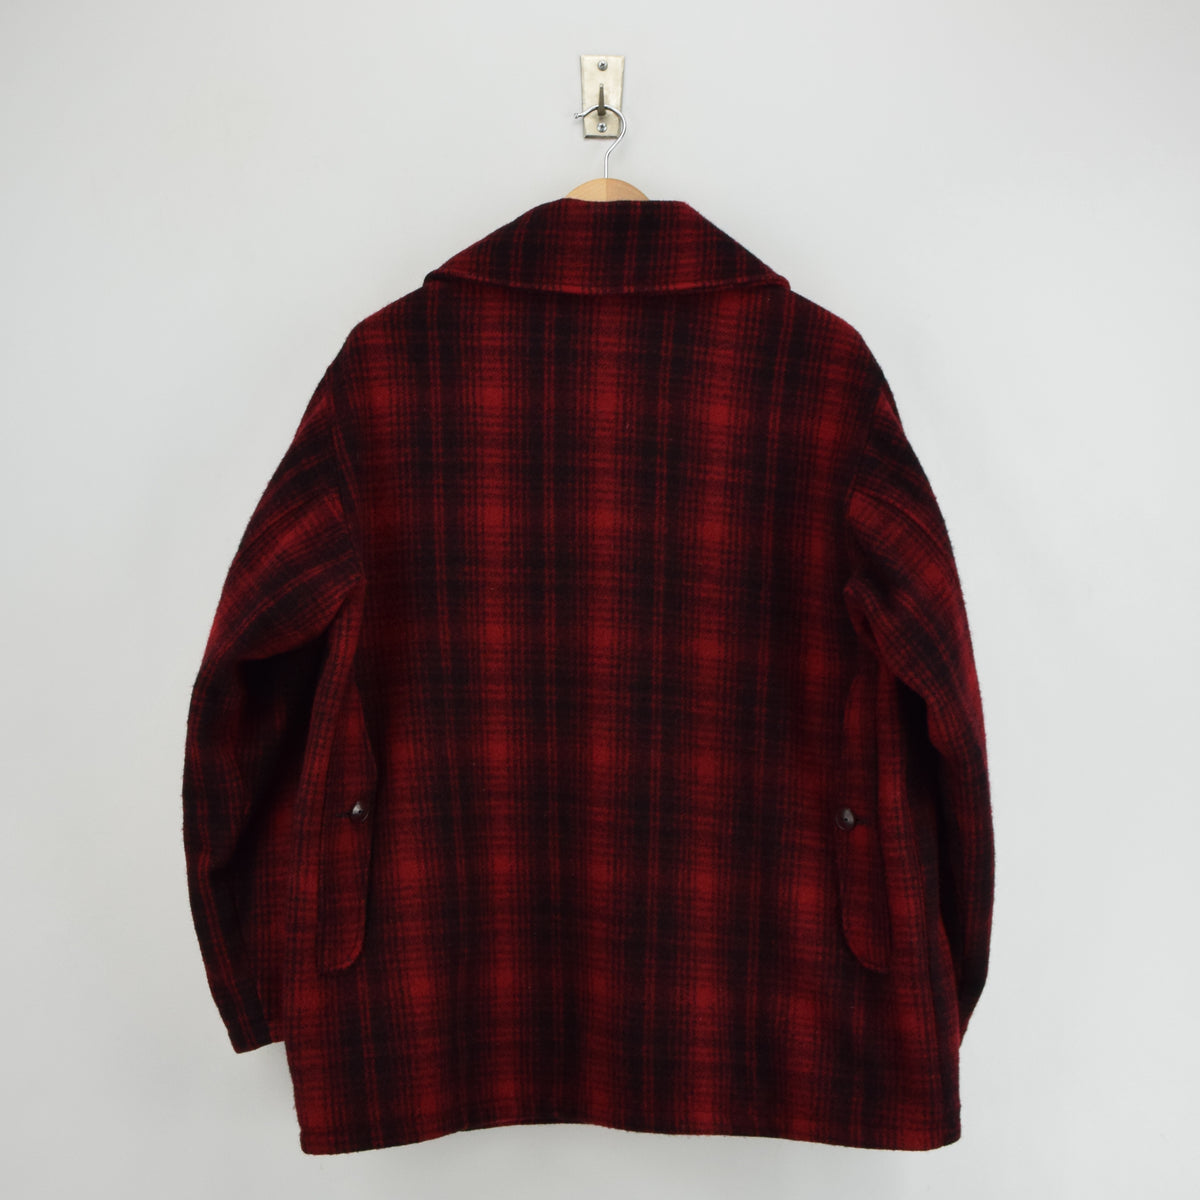 Vintage 70s Woolrich Buffalo Plaid Mackinaw Hunting Cruiser Jacket Made in USA L back